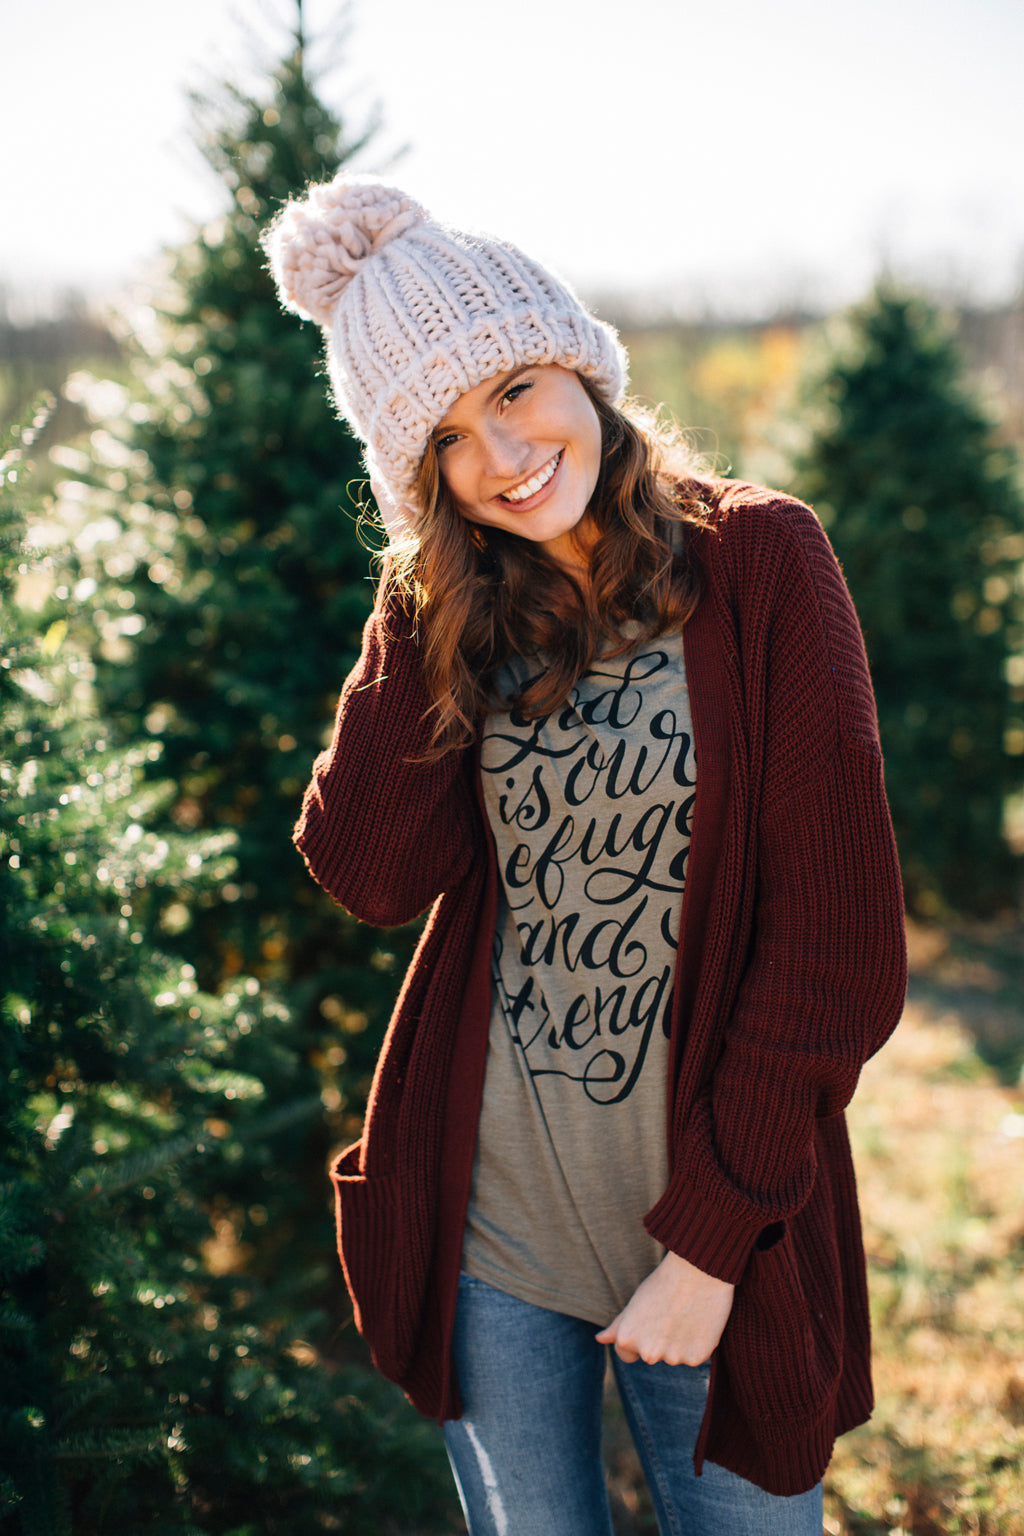 walk in love. christmas t-shirt